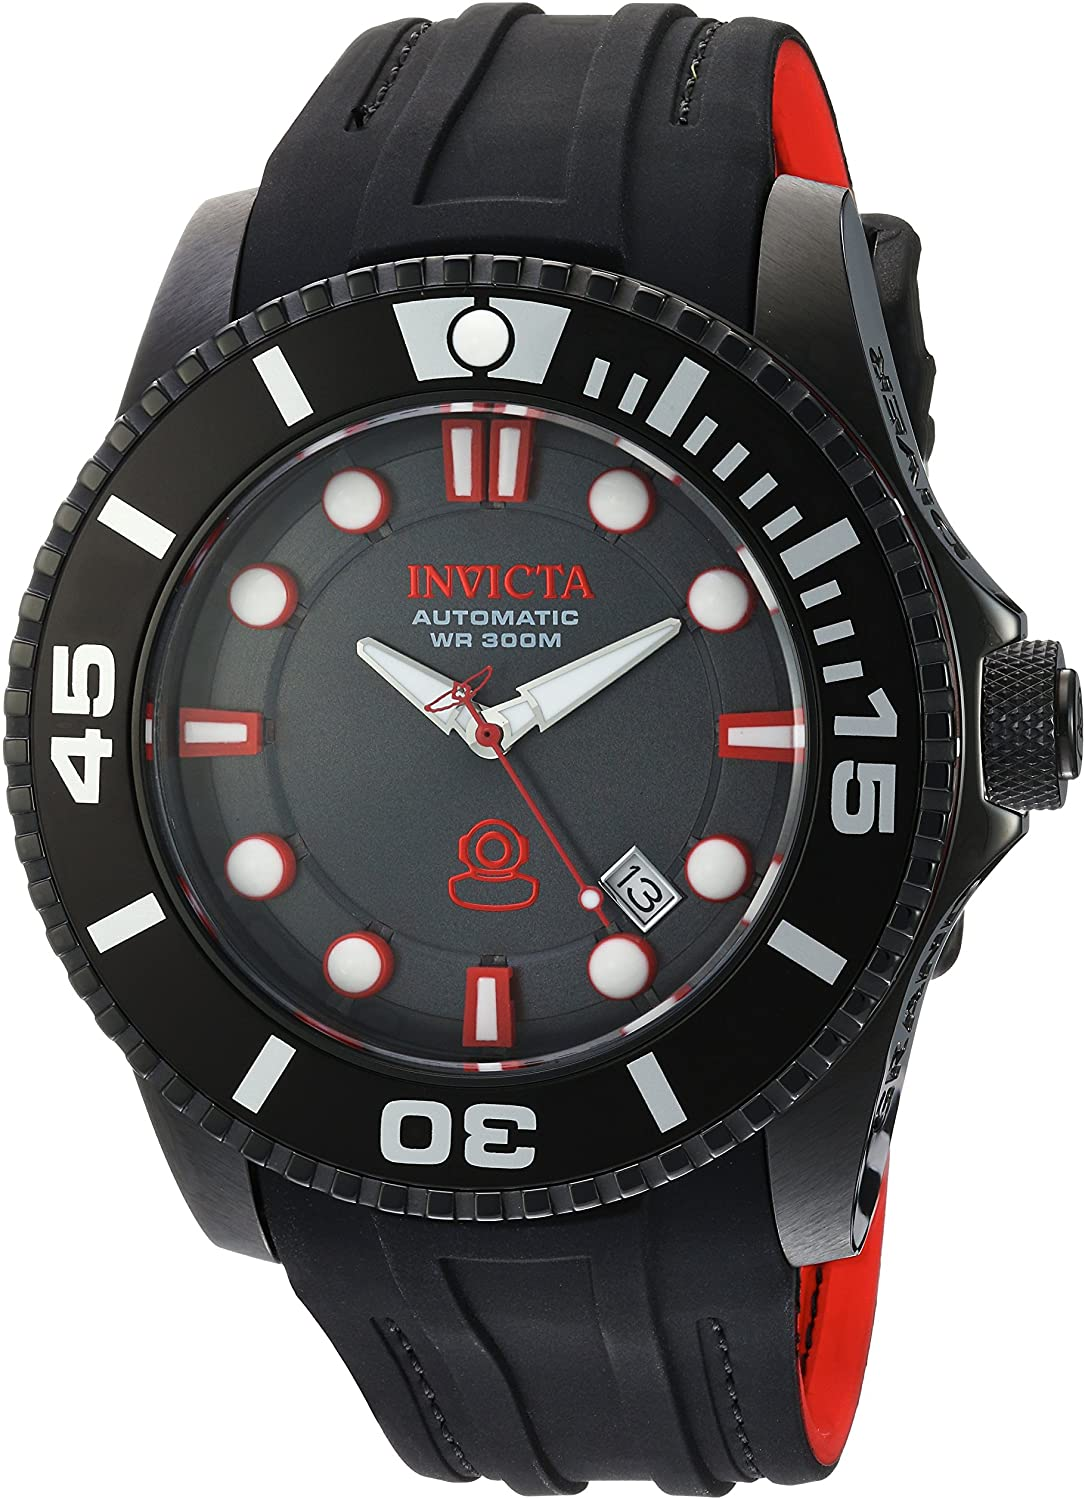 Invicta Men's Pro Diver Stainless Steel Automatic-self-Wind Diving Watch